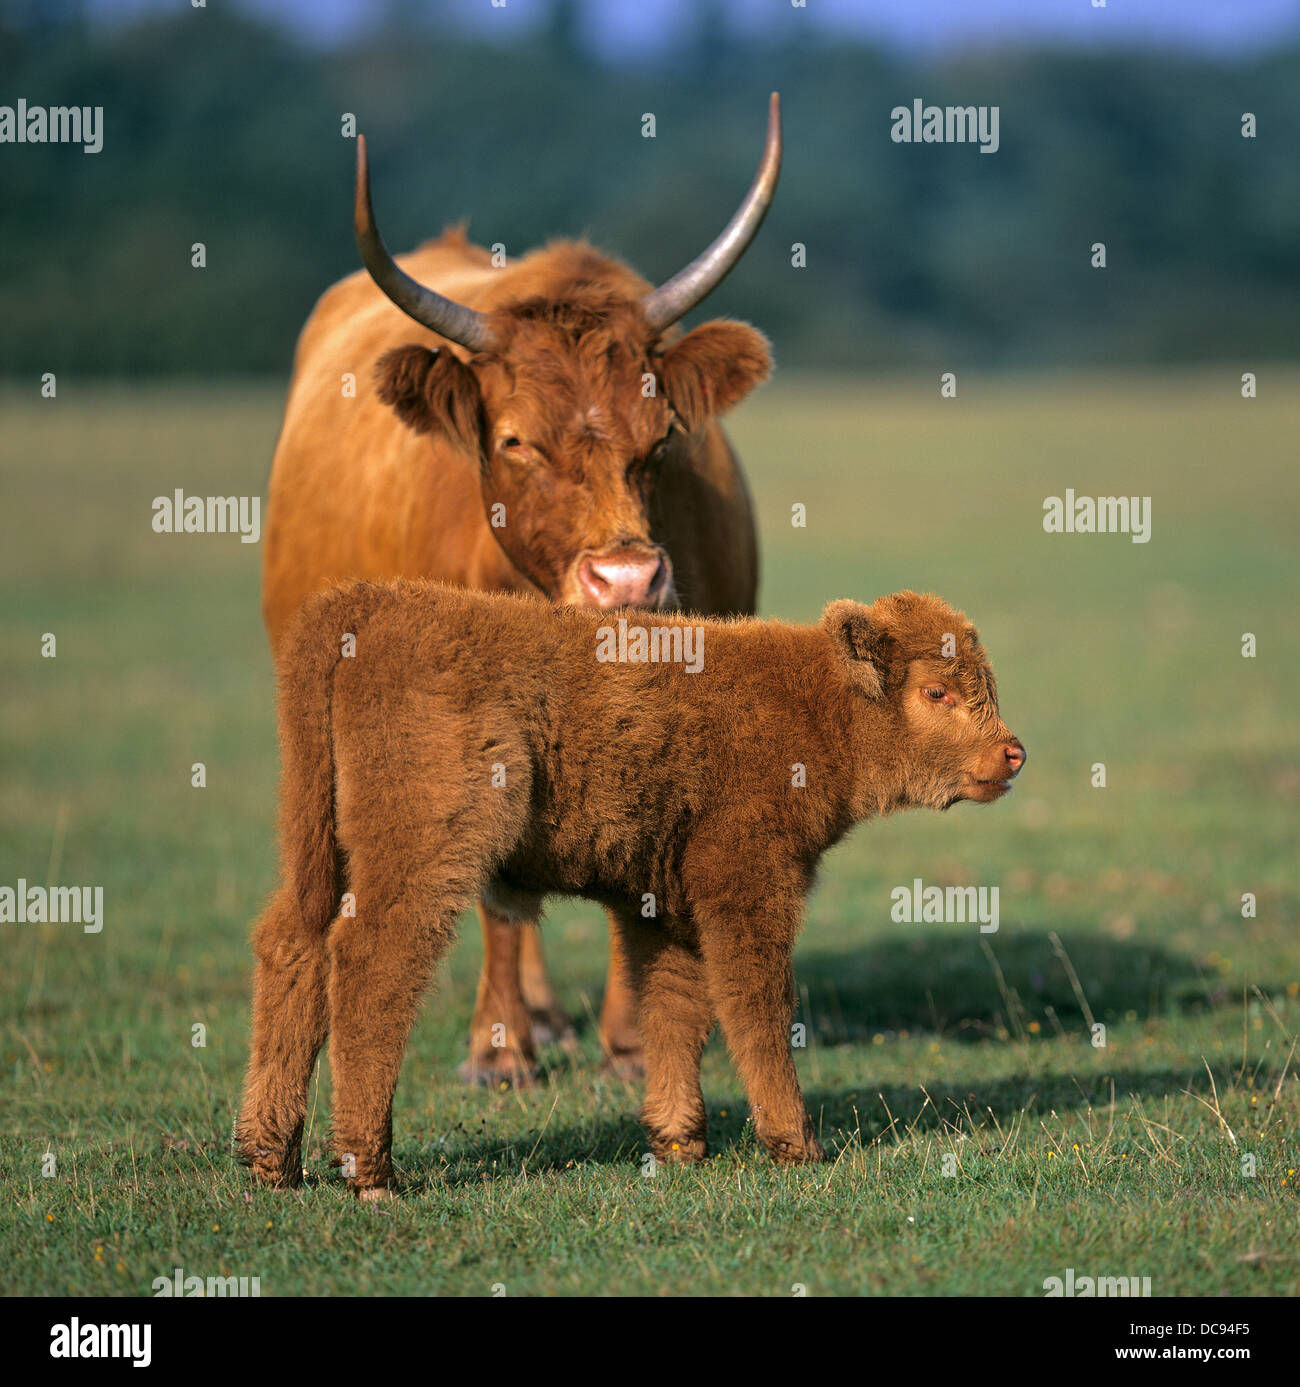 Luing cattle cow and calf on a pasture stock photo 59208105 alamy luing cattle cow and calf on a pasture publicscrutiny Images